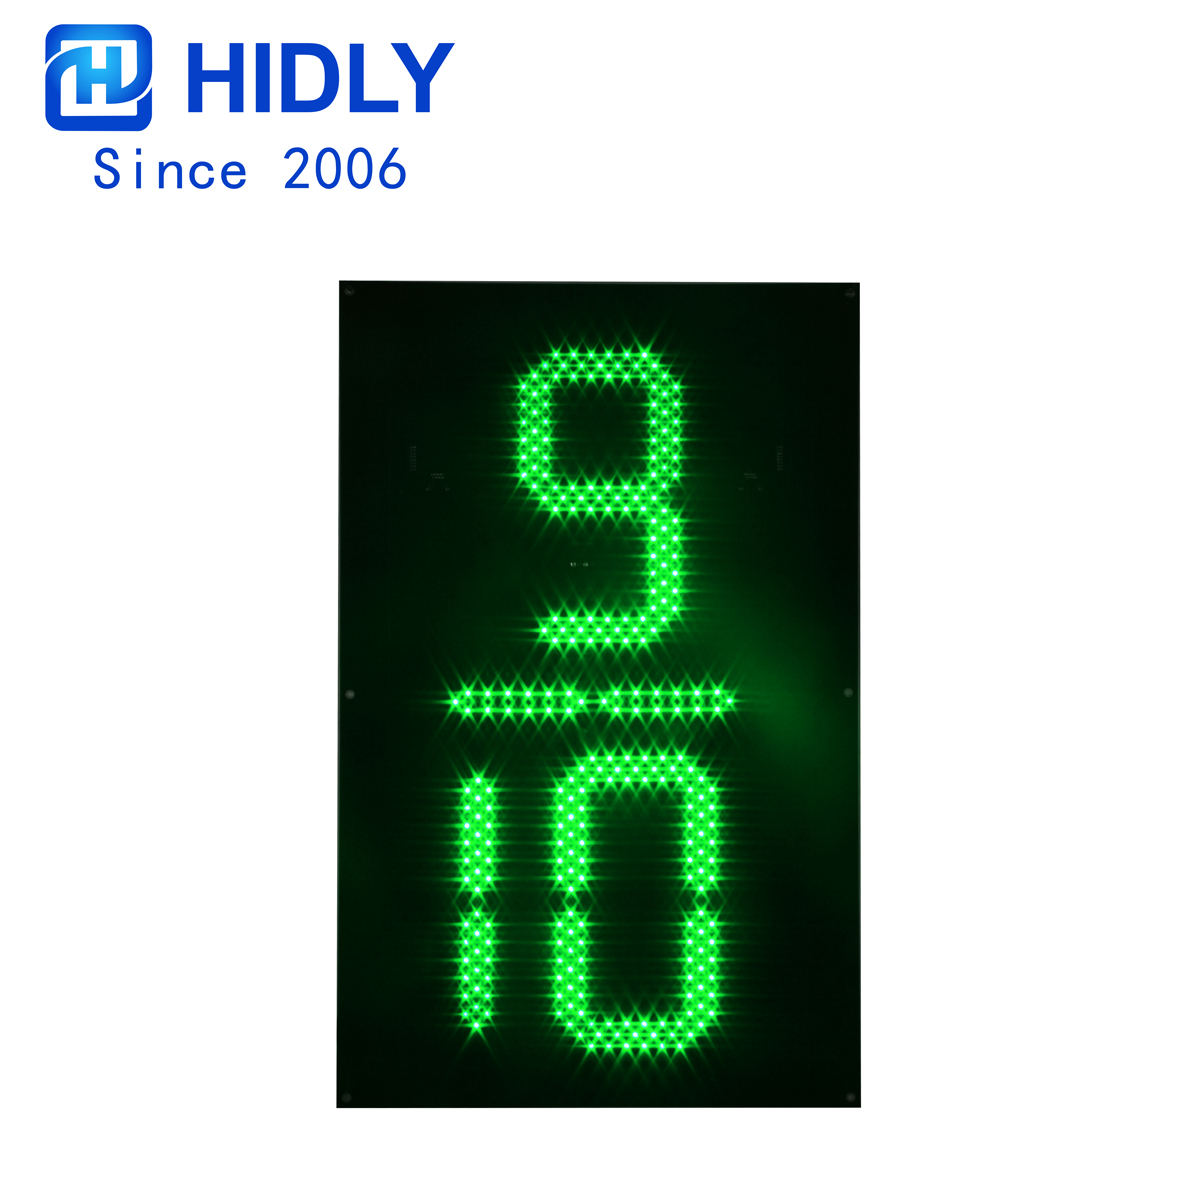 24 Inch 9/10 Green Led Digital Board